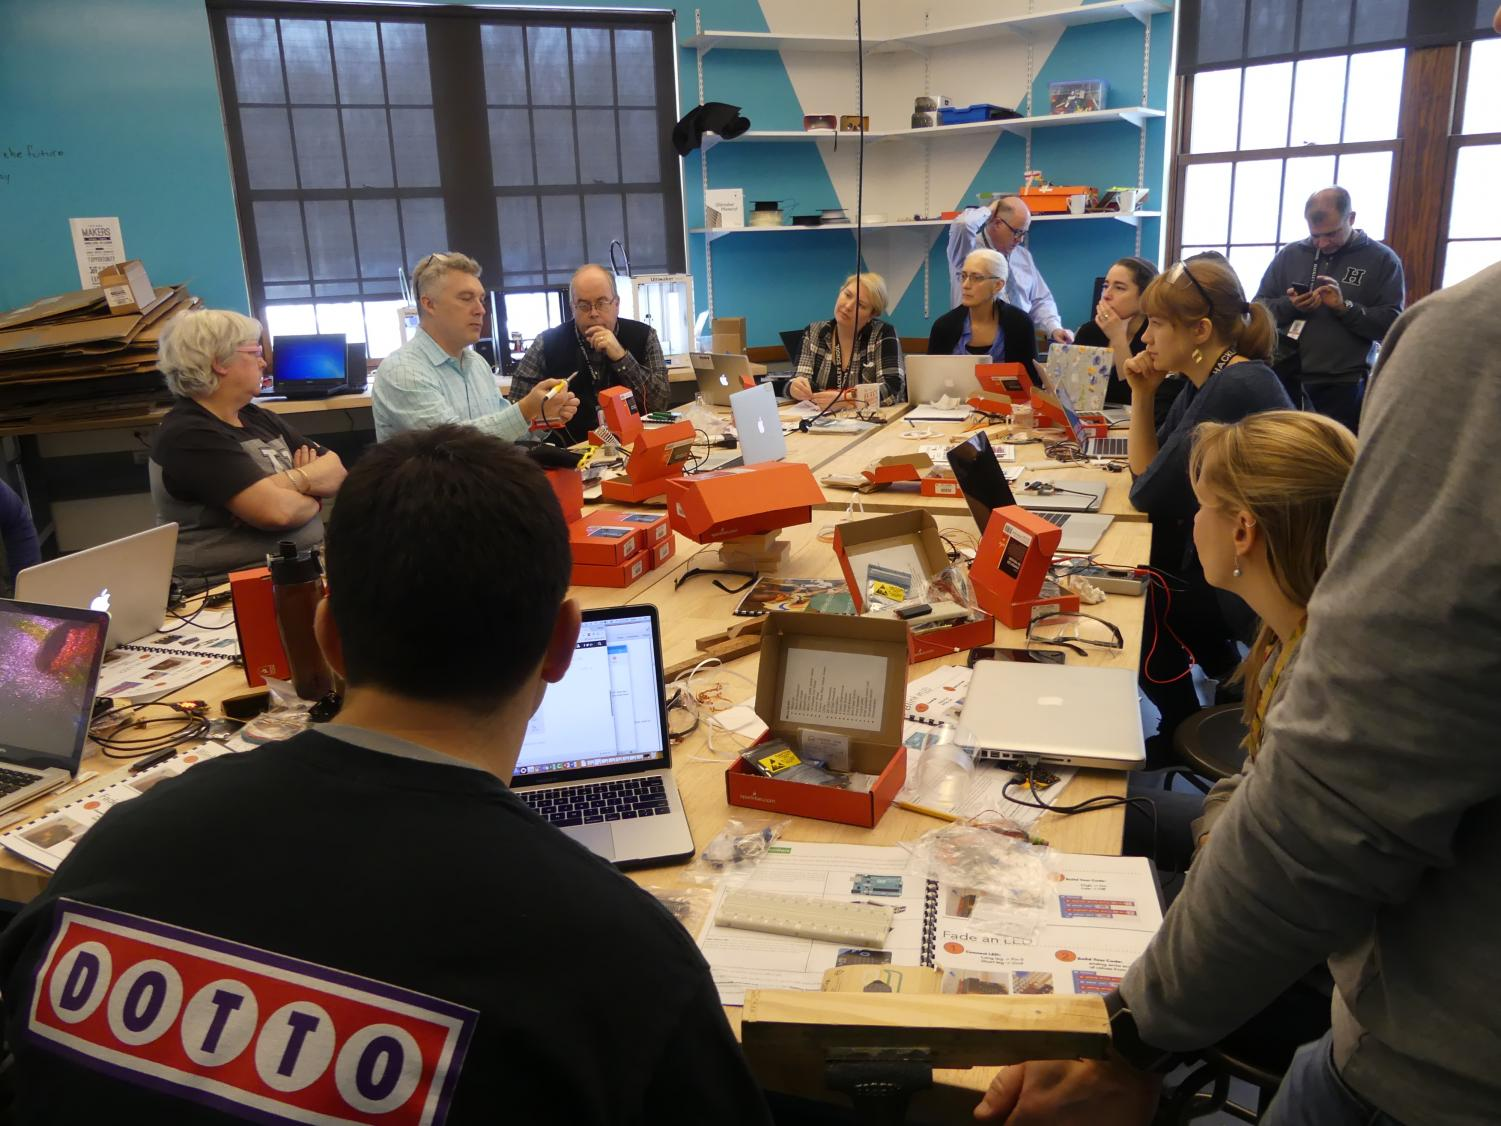 Hackley Teachers are currently going through Professional Development courses before the space opens where they learn to use the materials and tools in hopes of incorporating them into their curriculum.